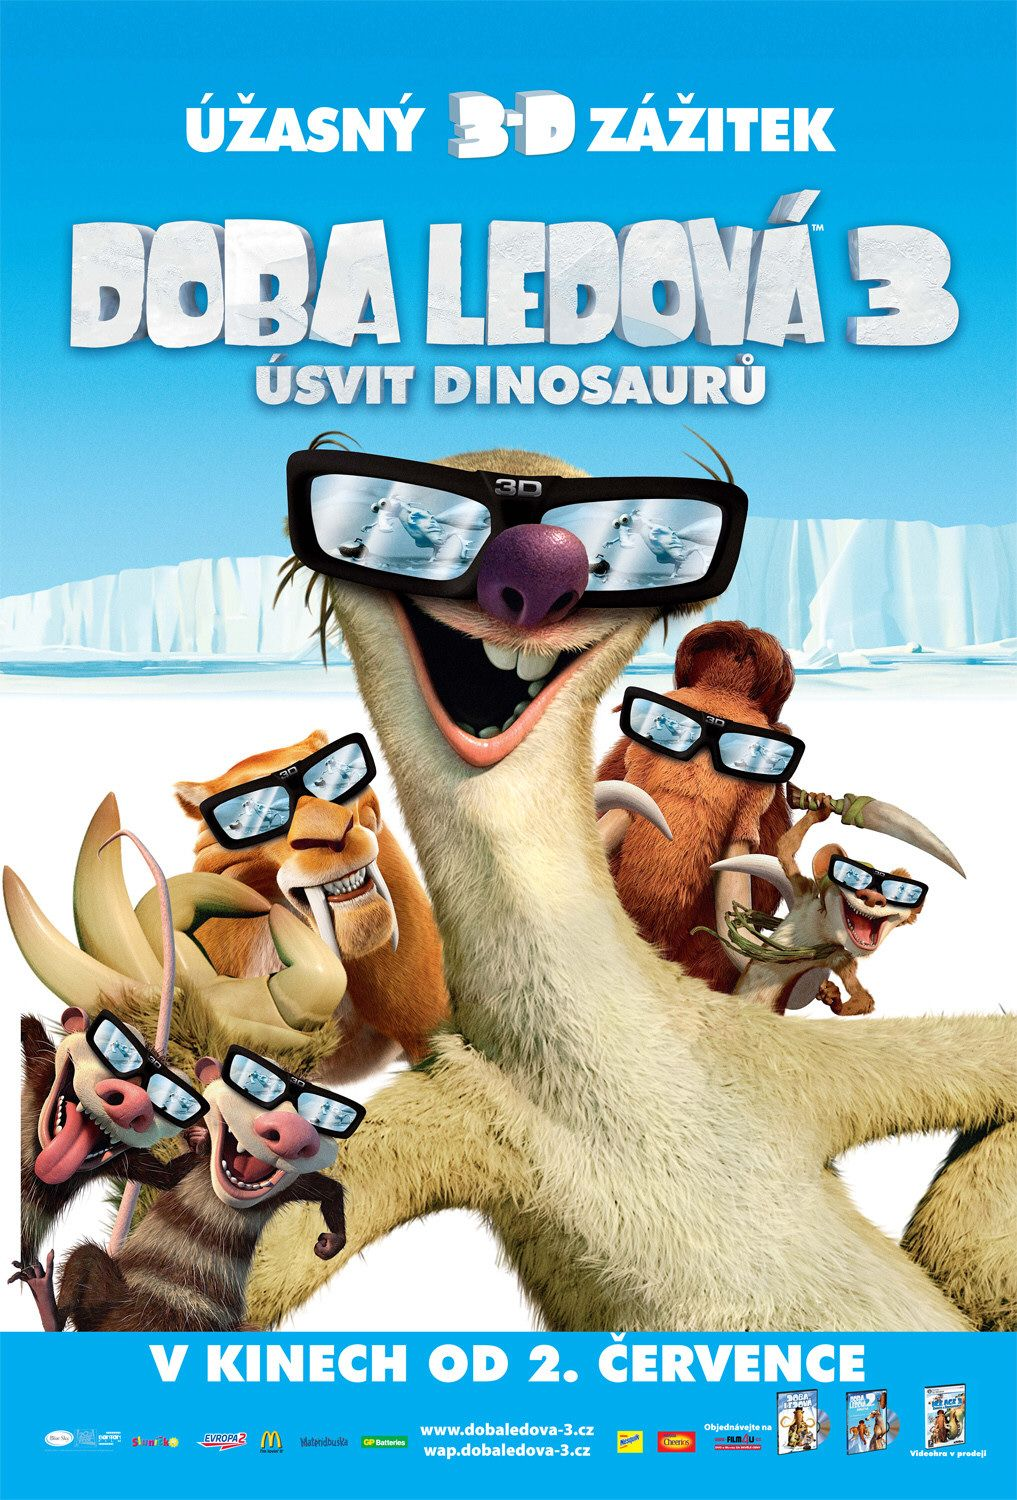 Ice Age 3 - Alba dei Dinosauri (Dawn of the Dinosaurs) - film poster  Sid